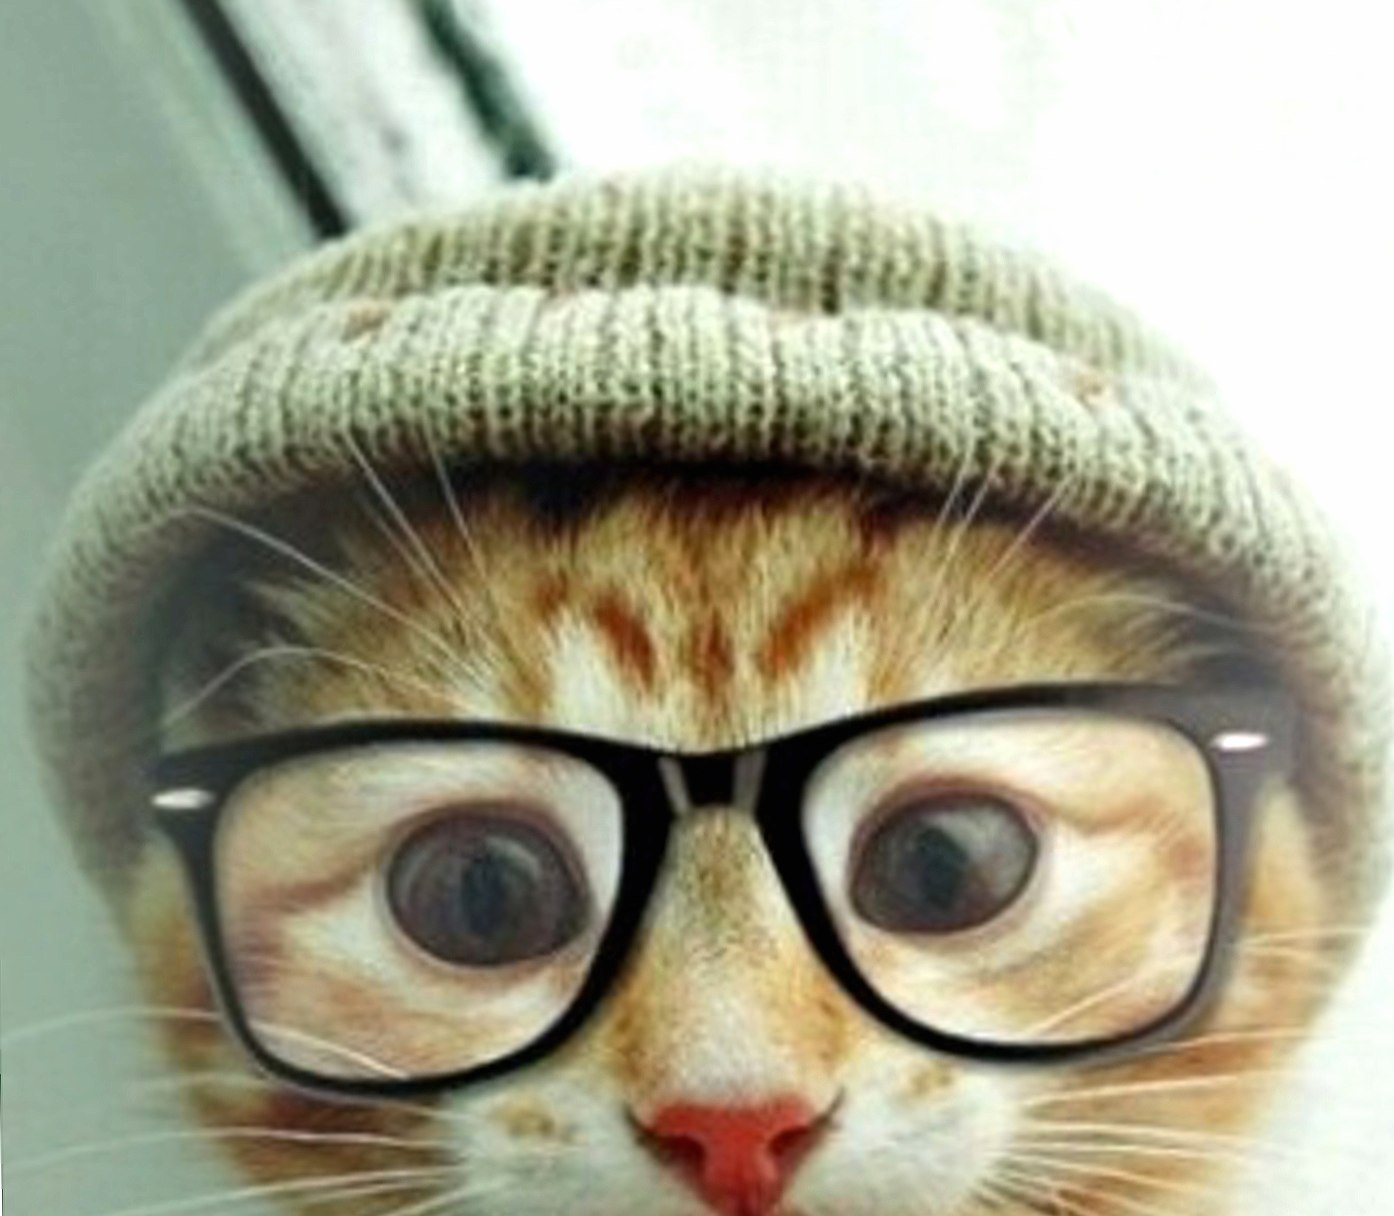 hipster cat at 320 x 480 iPhone size wallpapers HD quality